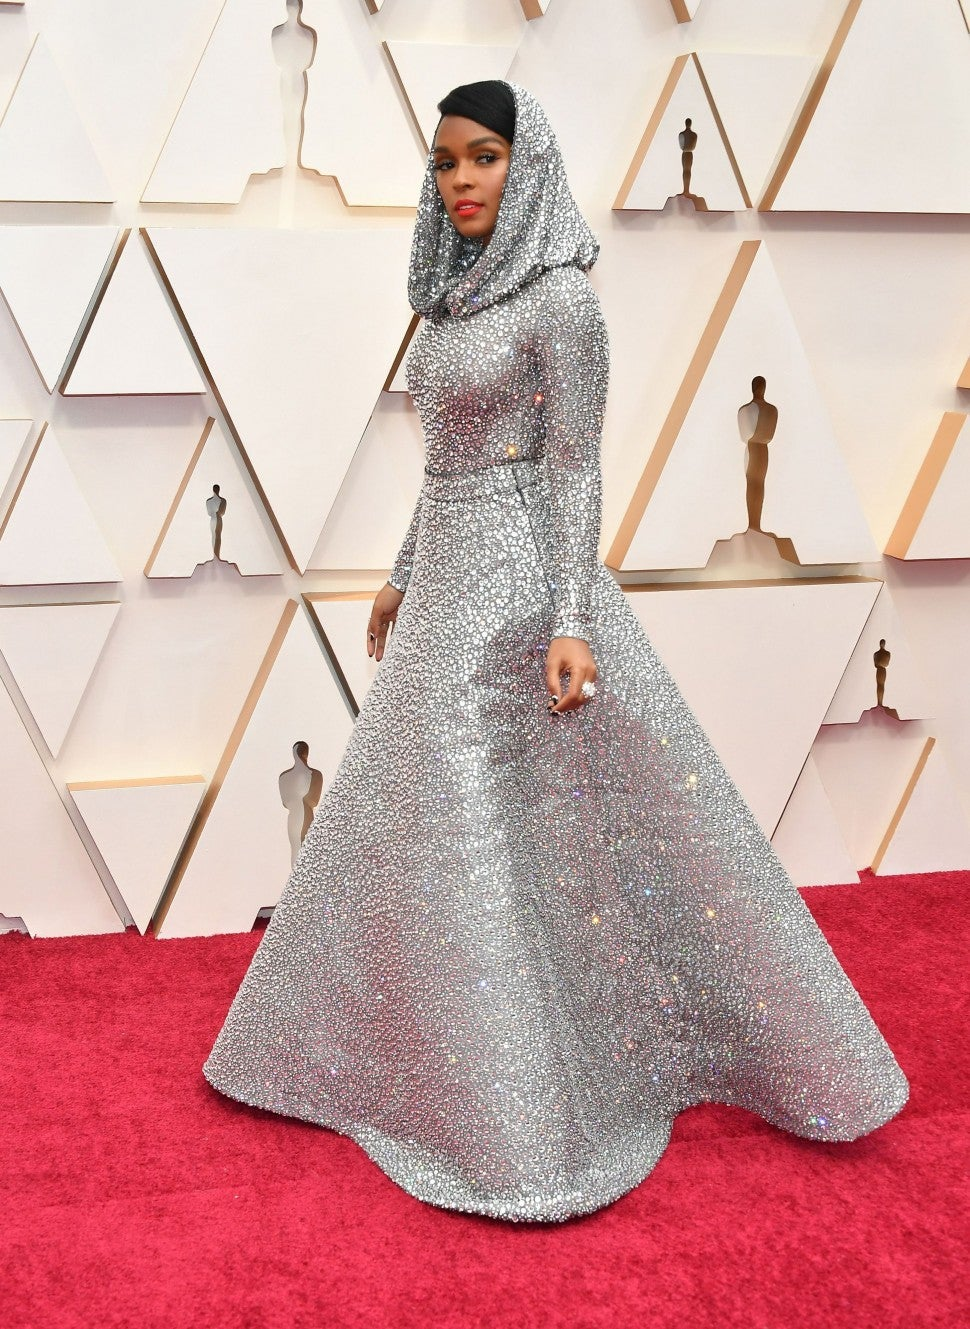 Janelle Monáe at 2020 oscars